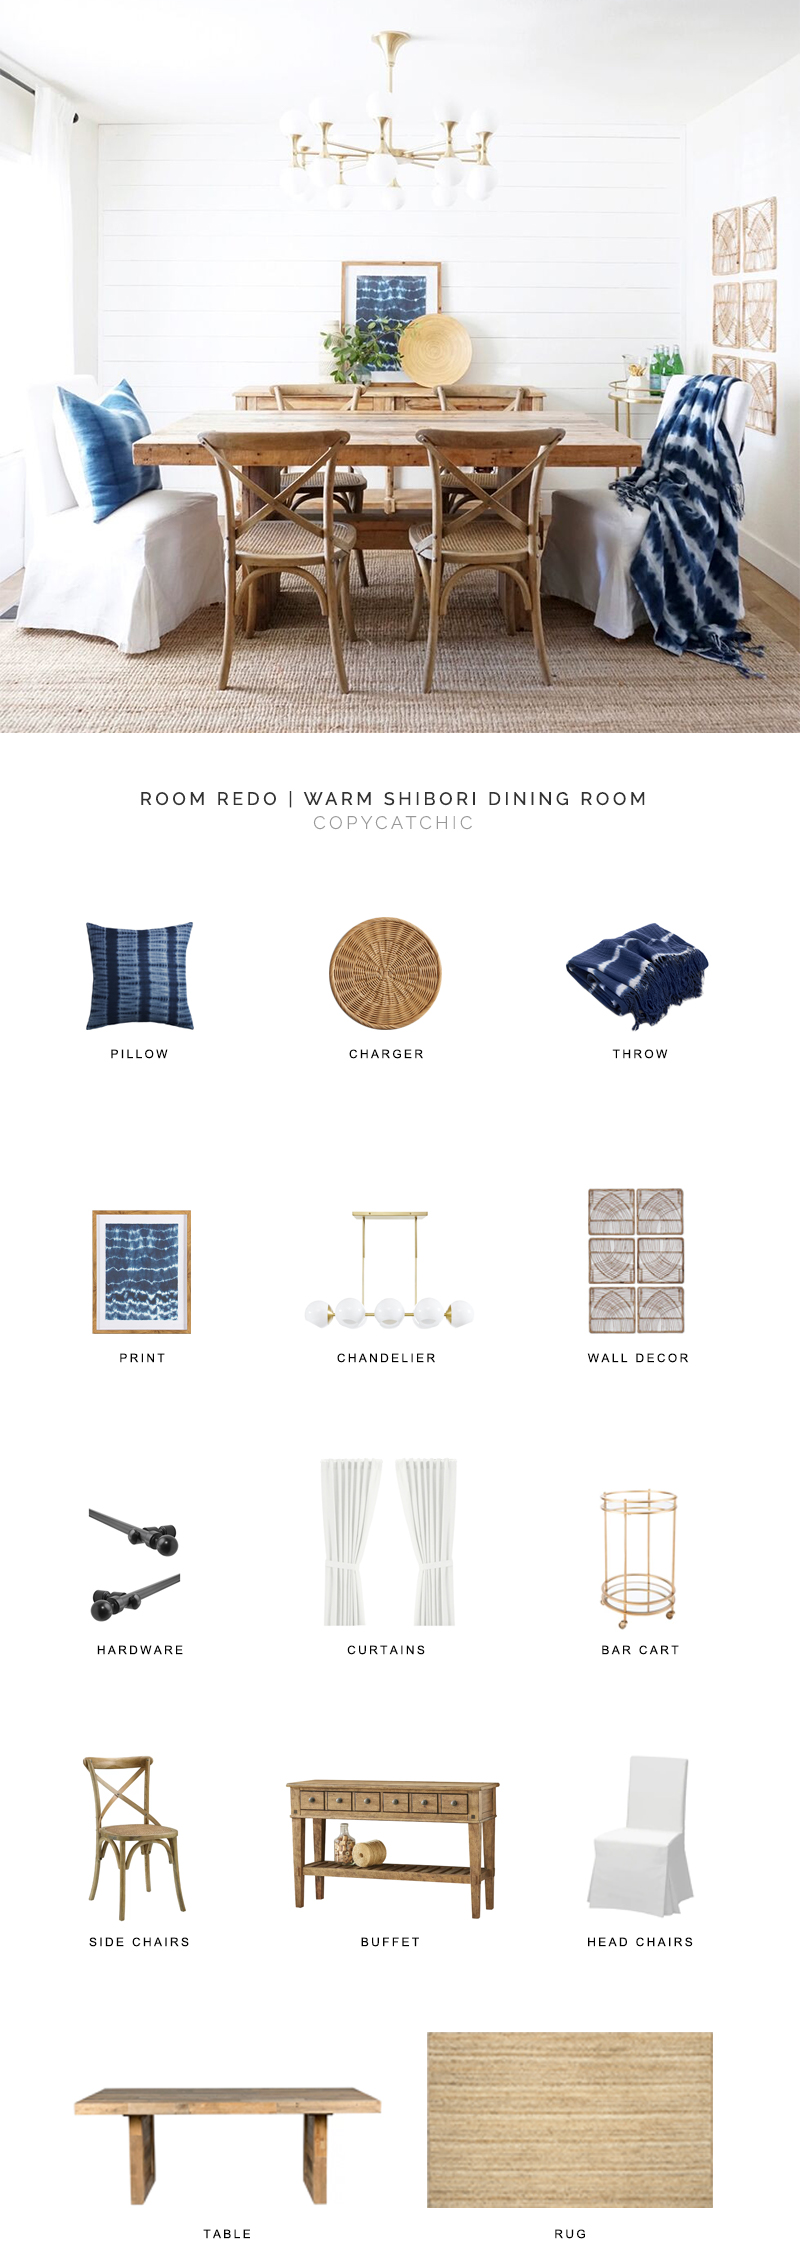 This modern farmhouse style dining room with indigo shibori accents design by Almafied gets recreated for less by copycatchic luxe living for less, budget home decor and design daily finds, home trends, sales, budget travel and room redos